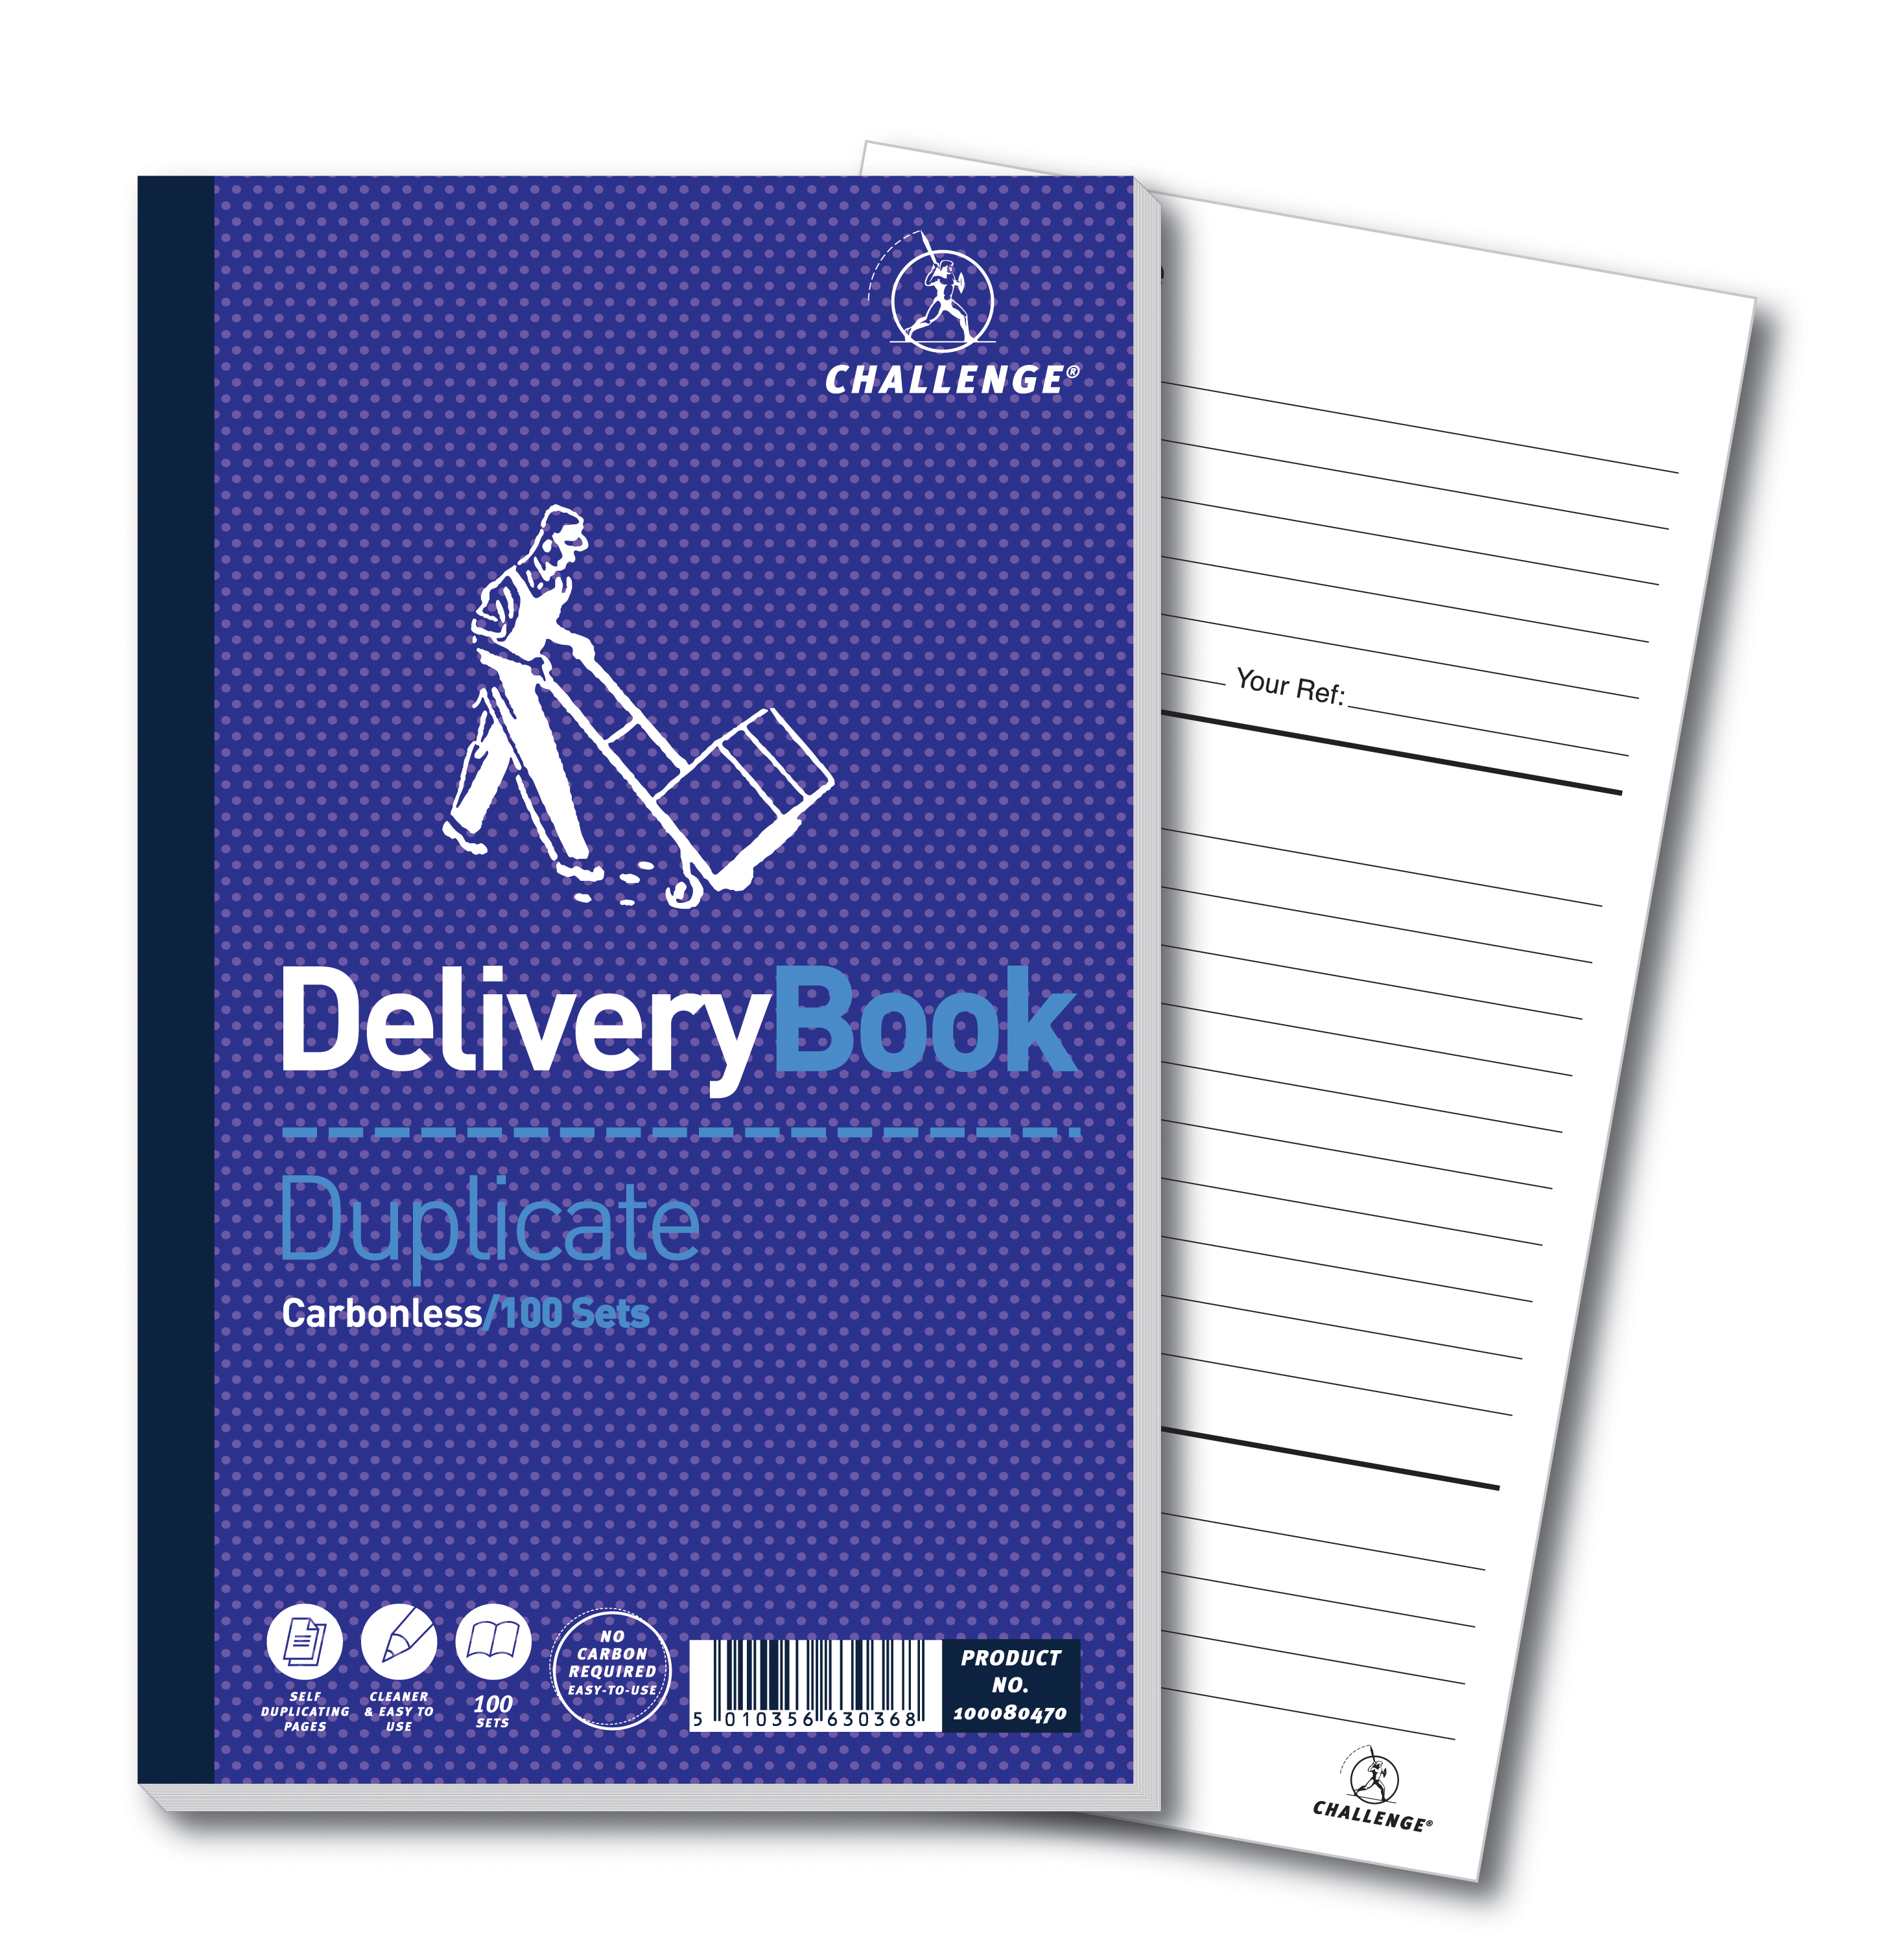 Challenge Duplicate Delivery Book Carbonless 100 Sets 210